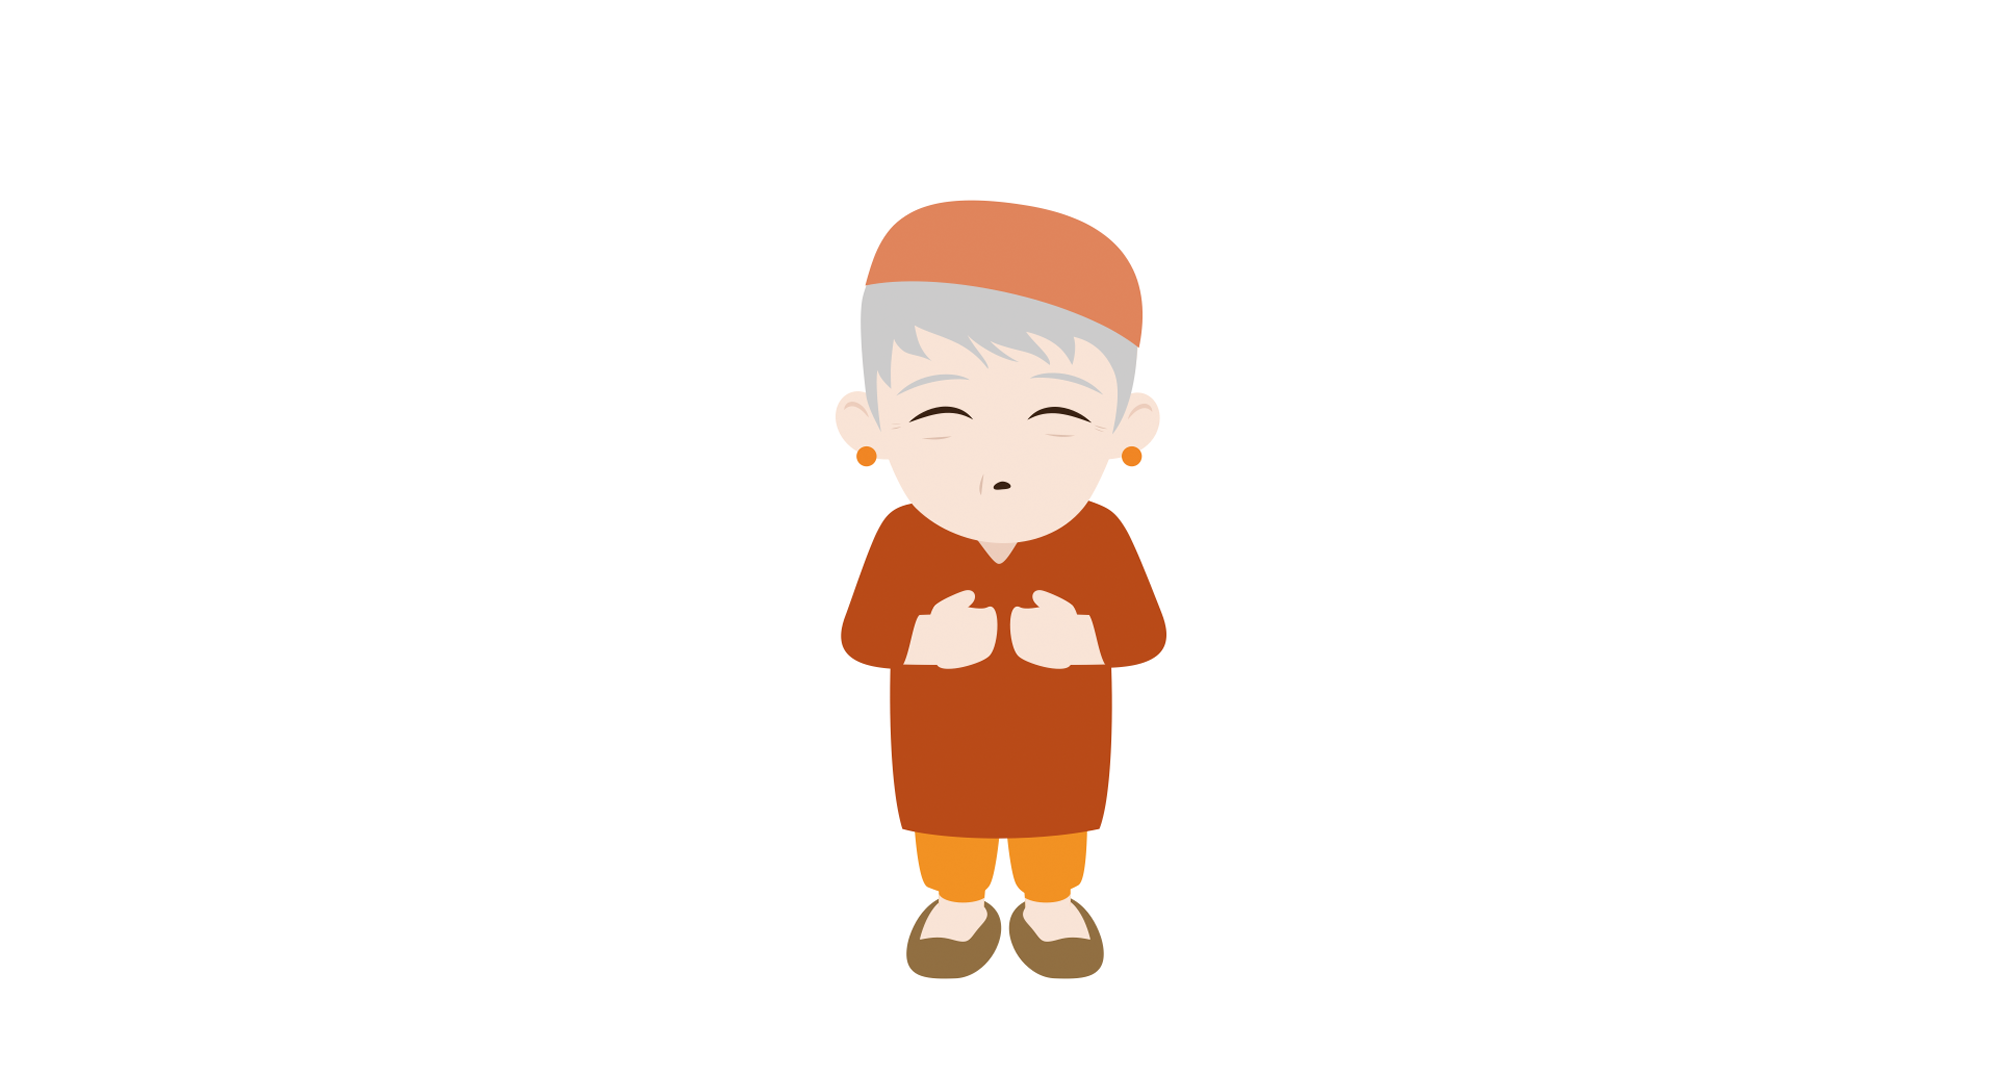 Old lady with orange outfit. With text indicating 72 years old and acute exacerbation of chronic obstructive pulmonary disease. Cartoon.